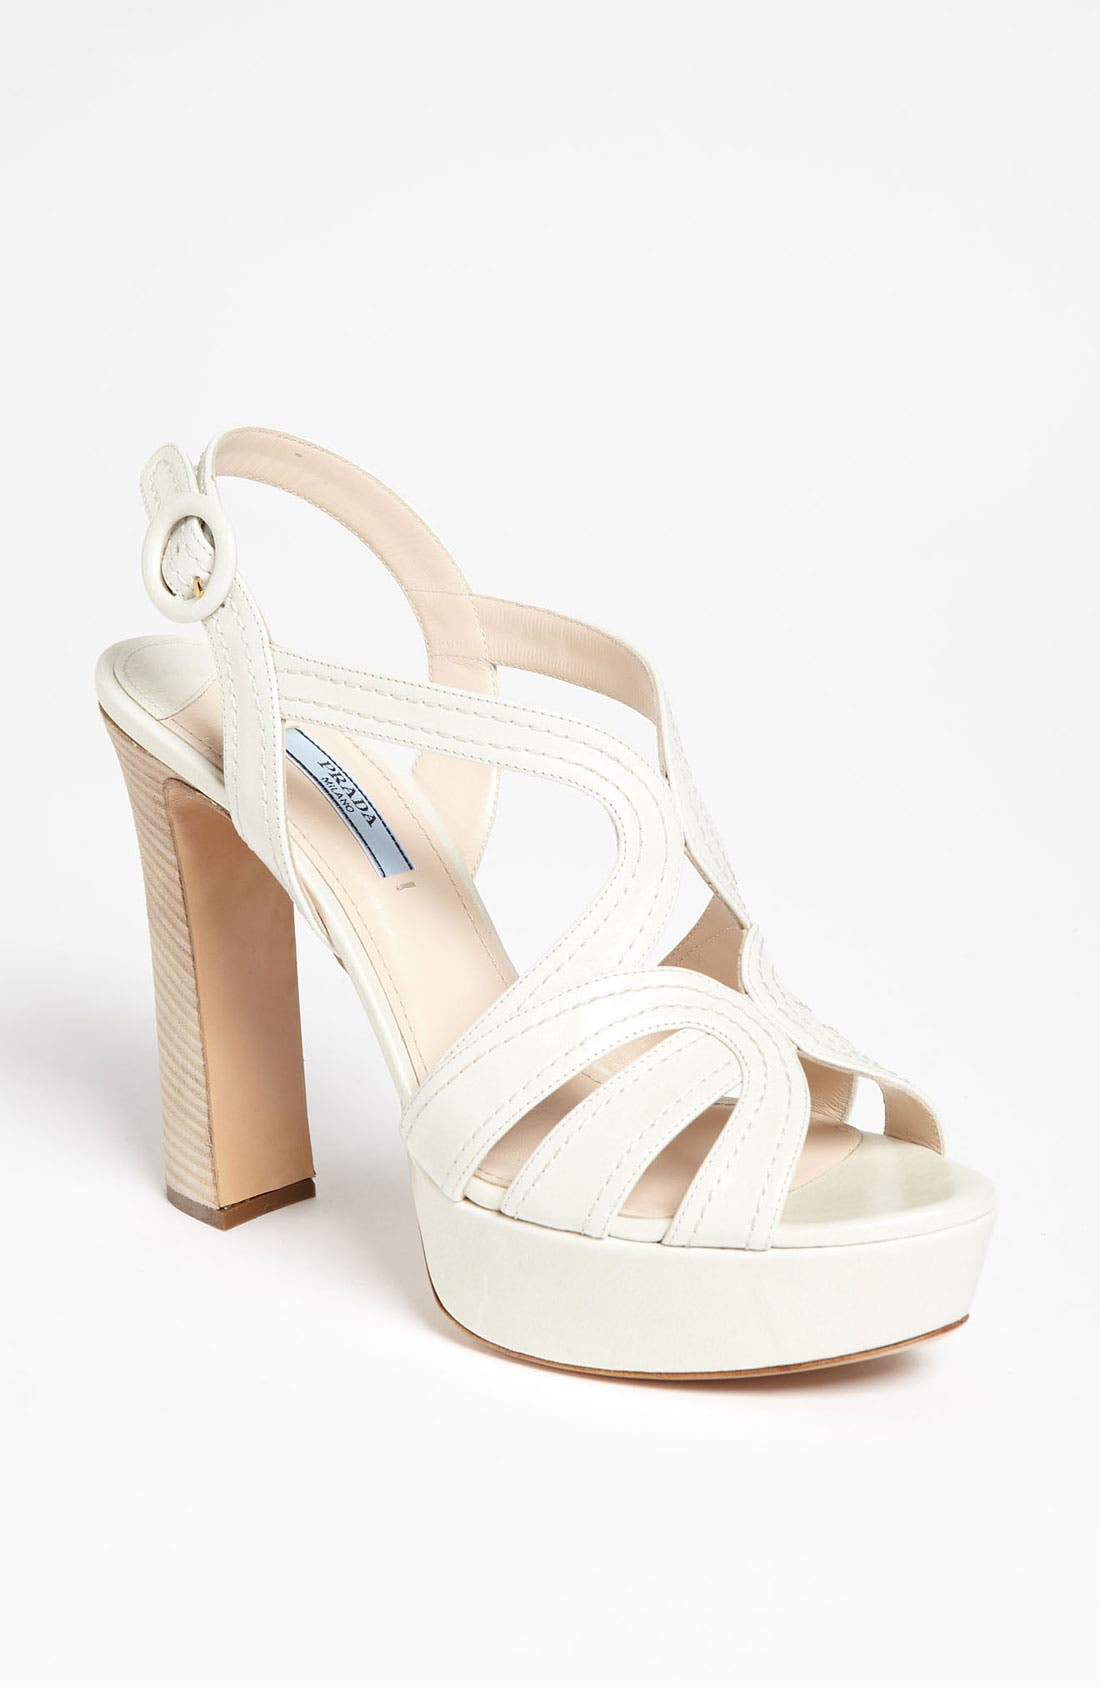 Blonde Heel Sandal,                             Main thumbnail 1, color,                             100